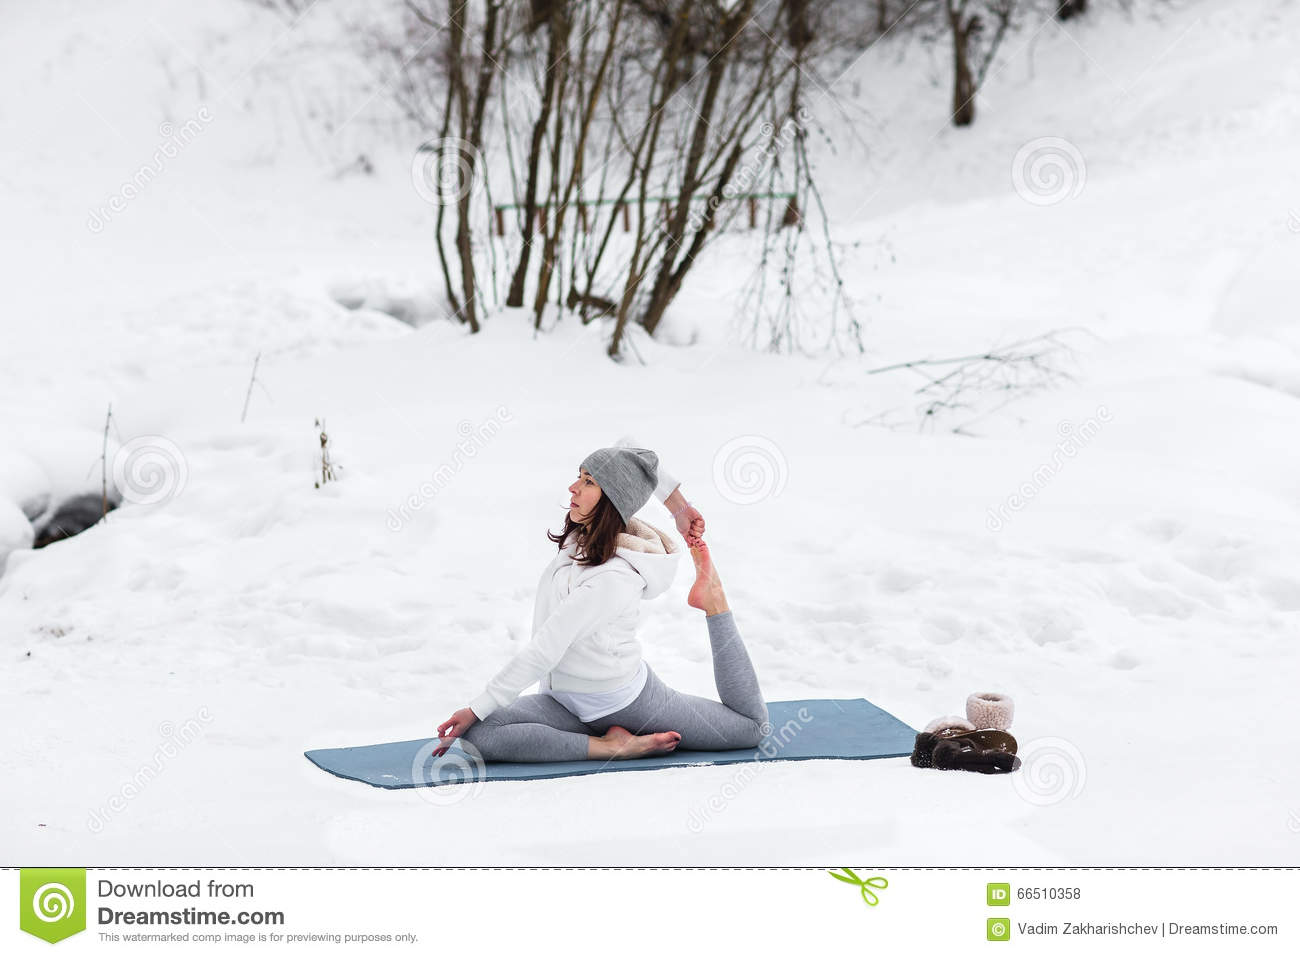 https://thumbs.dreamstime.com/z/winter-yoga-session-beautiful-place-young-athletic-woman-doing-woods-girl-engaged-fitness-park-66510358.jpg